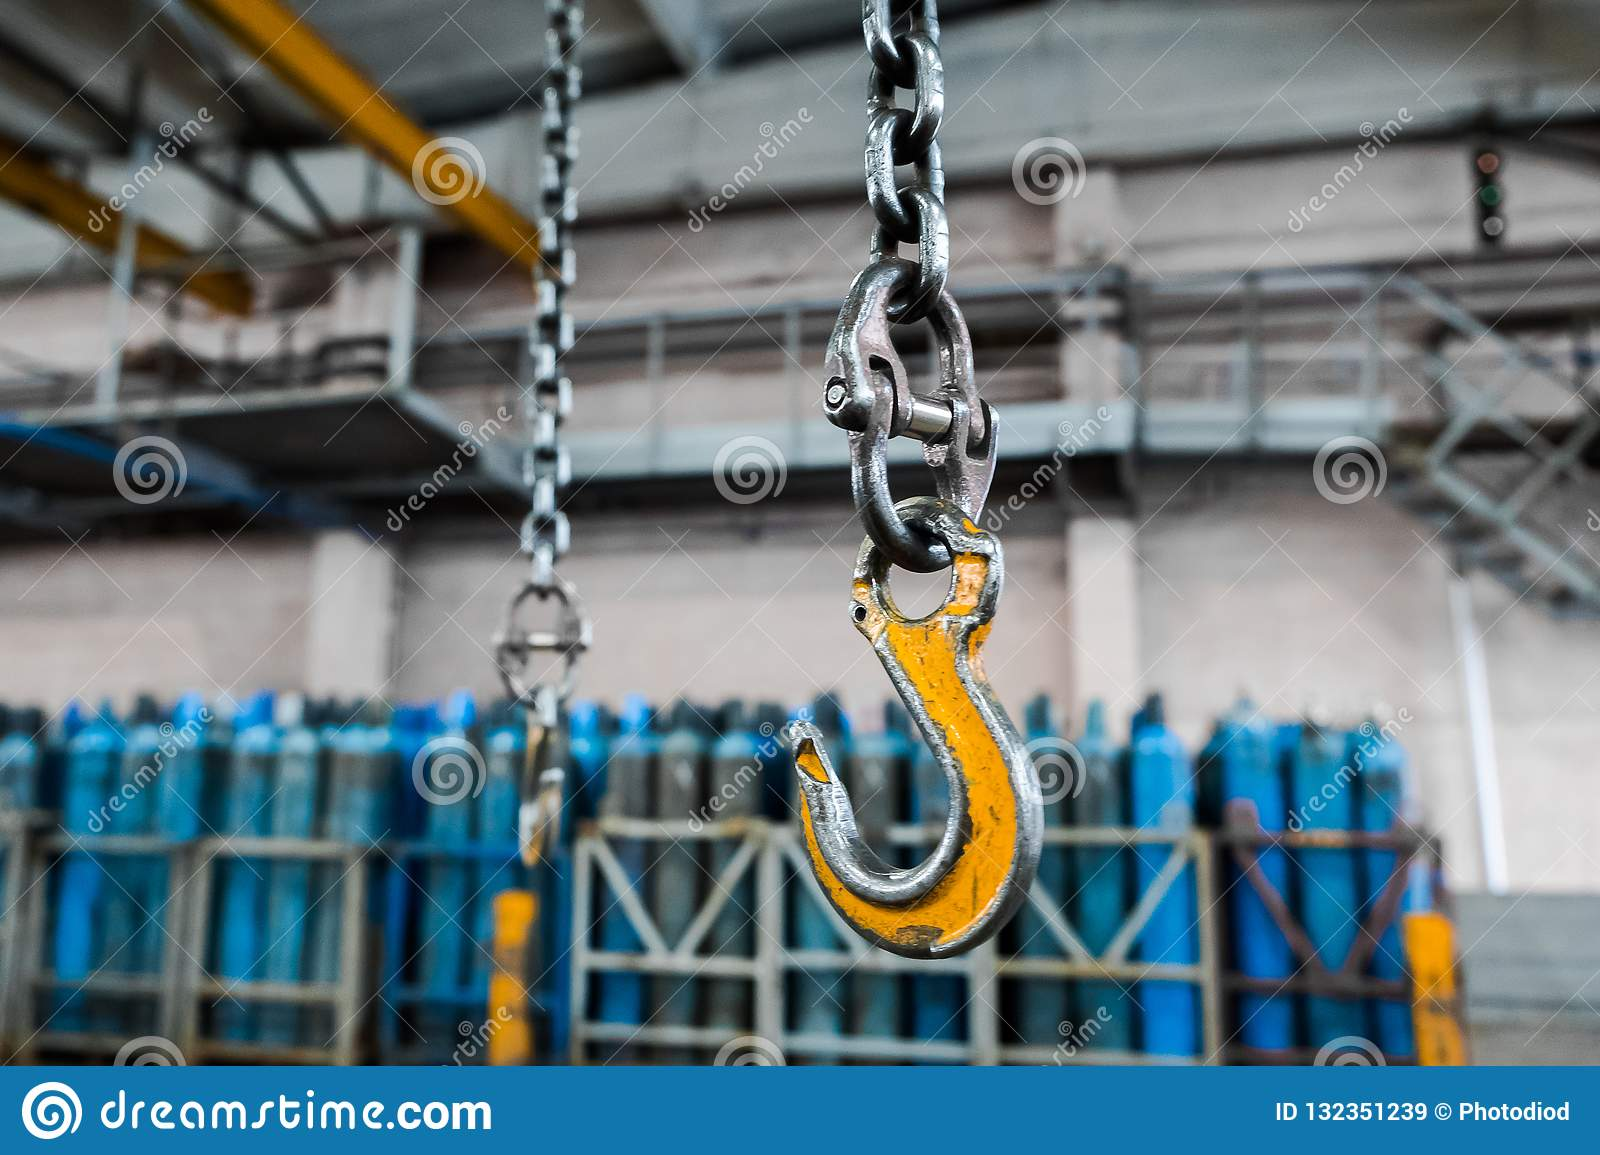 Metallic industrial hook for lifting heavy thing in the factory. Crane hooks on a thick chain inside the factory floor.